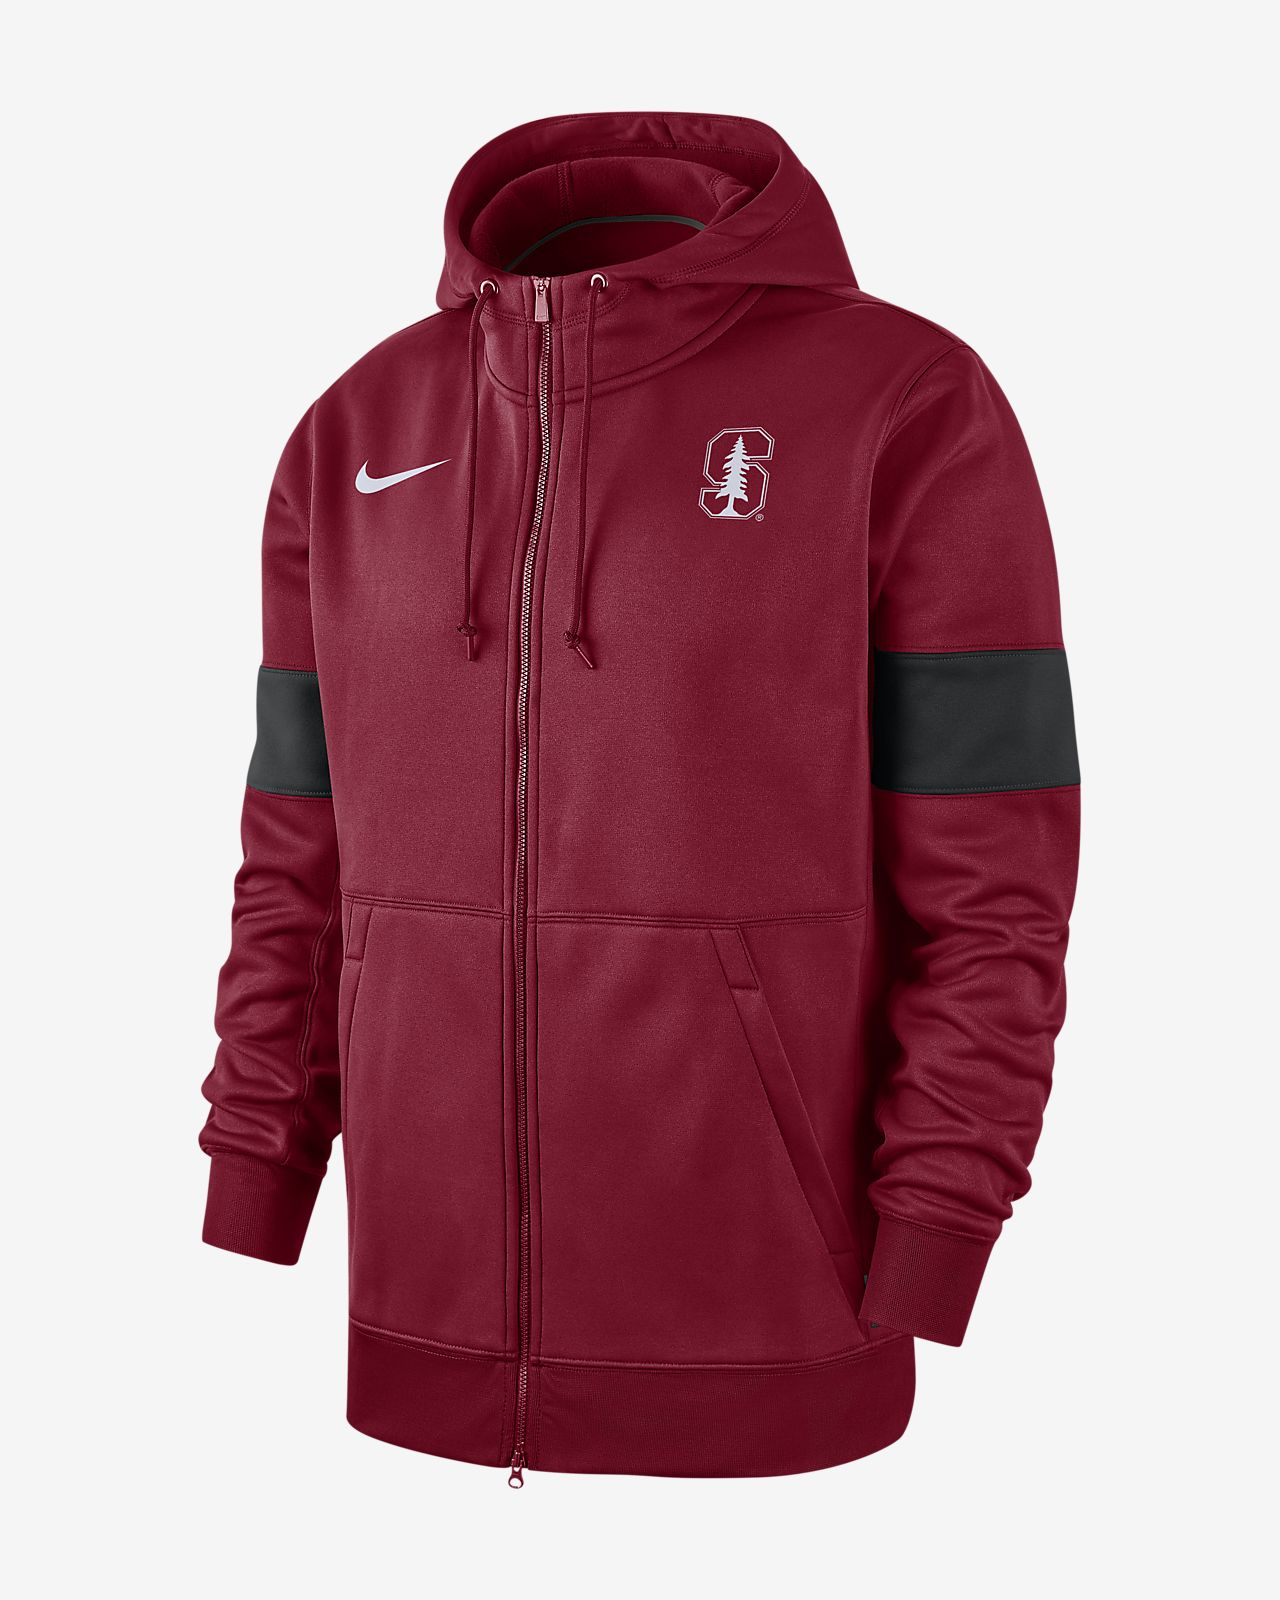 Nike College Therma (Stanford) Men's Full-Zip Hoodie